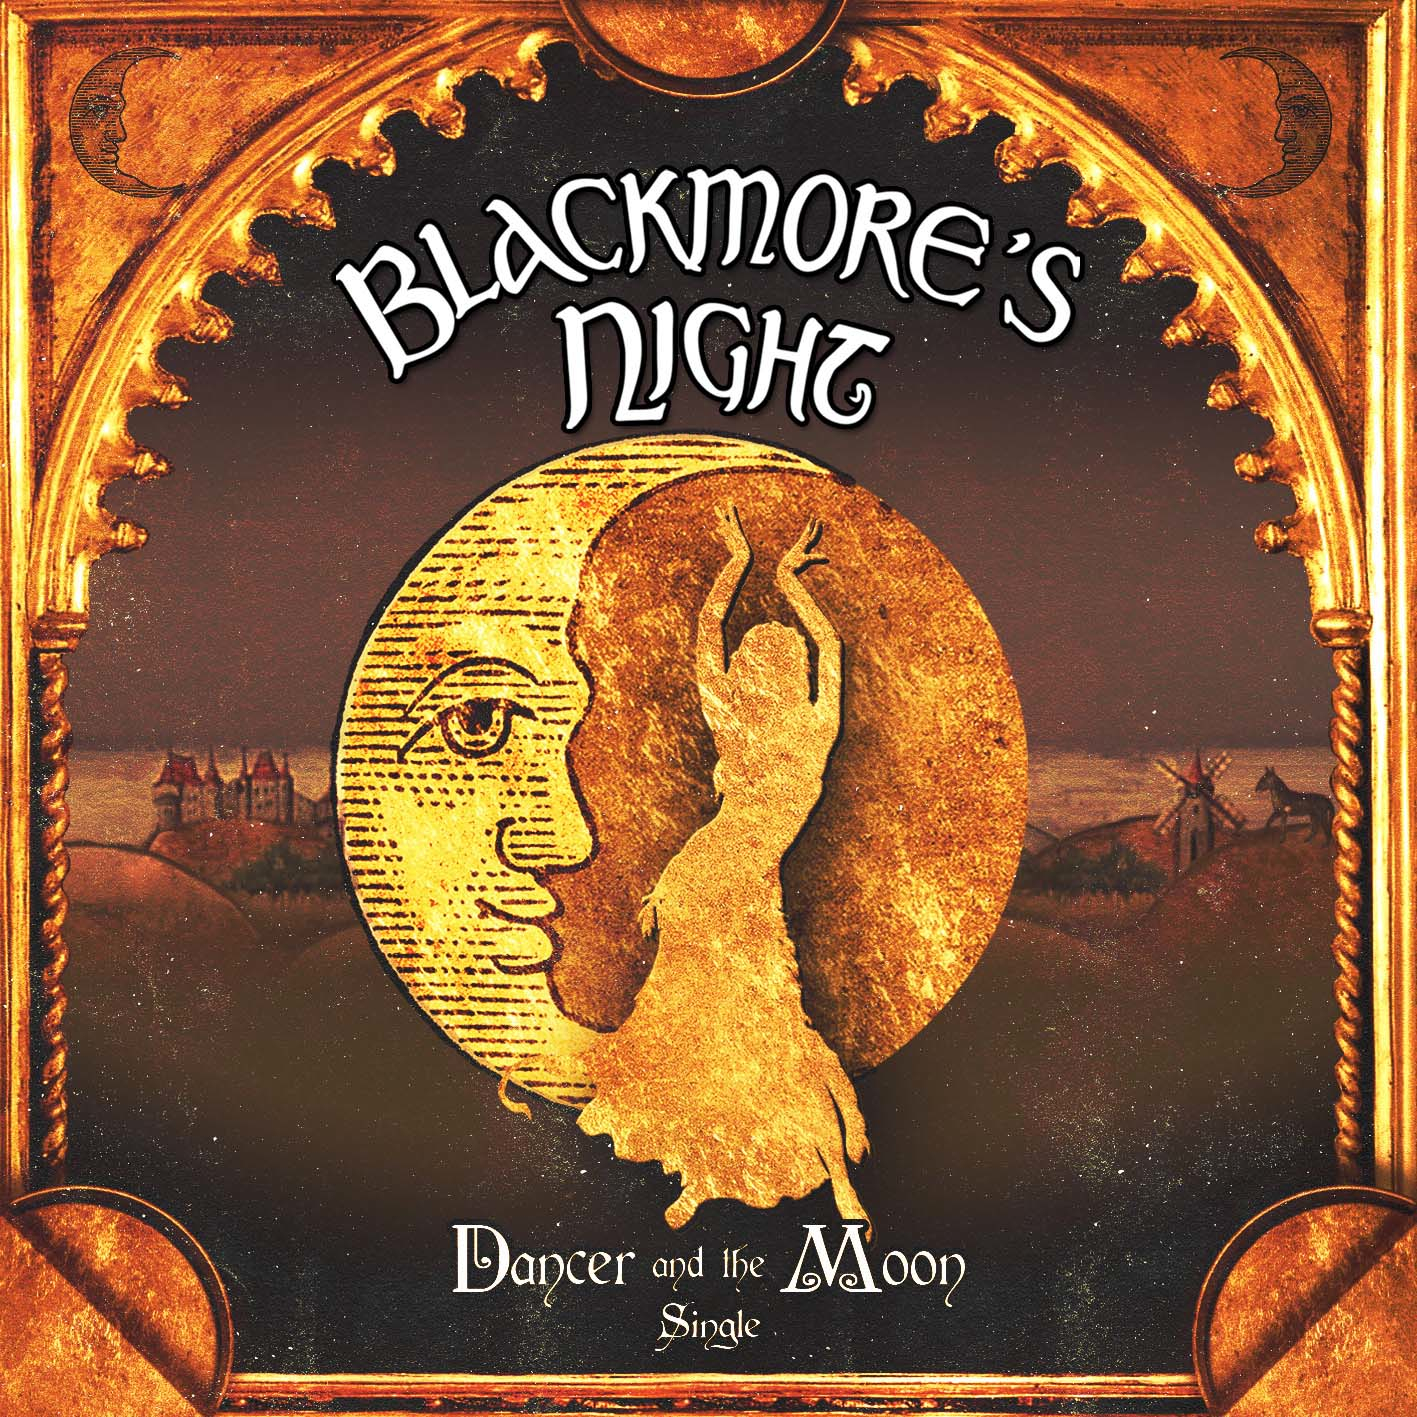 fort blackmore singles Lita ford was born to an english father and an inspired by ritchie blackmore's work with the album featured several singles including kiss me.